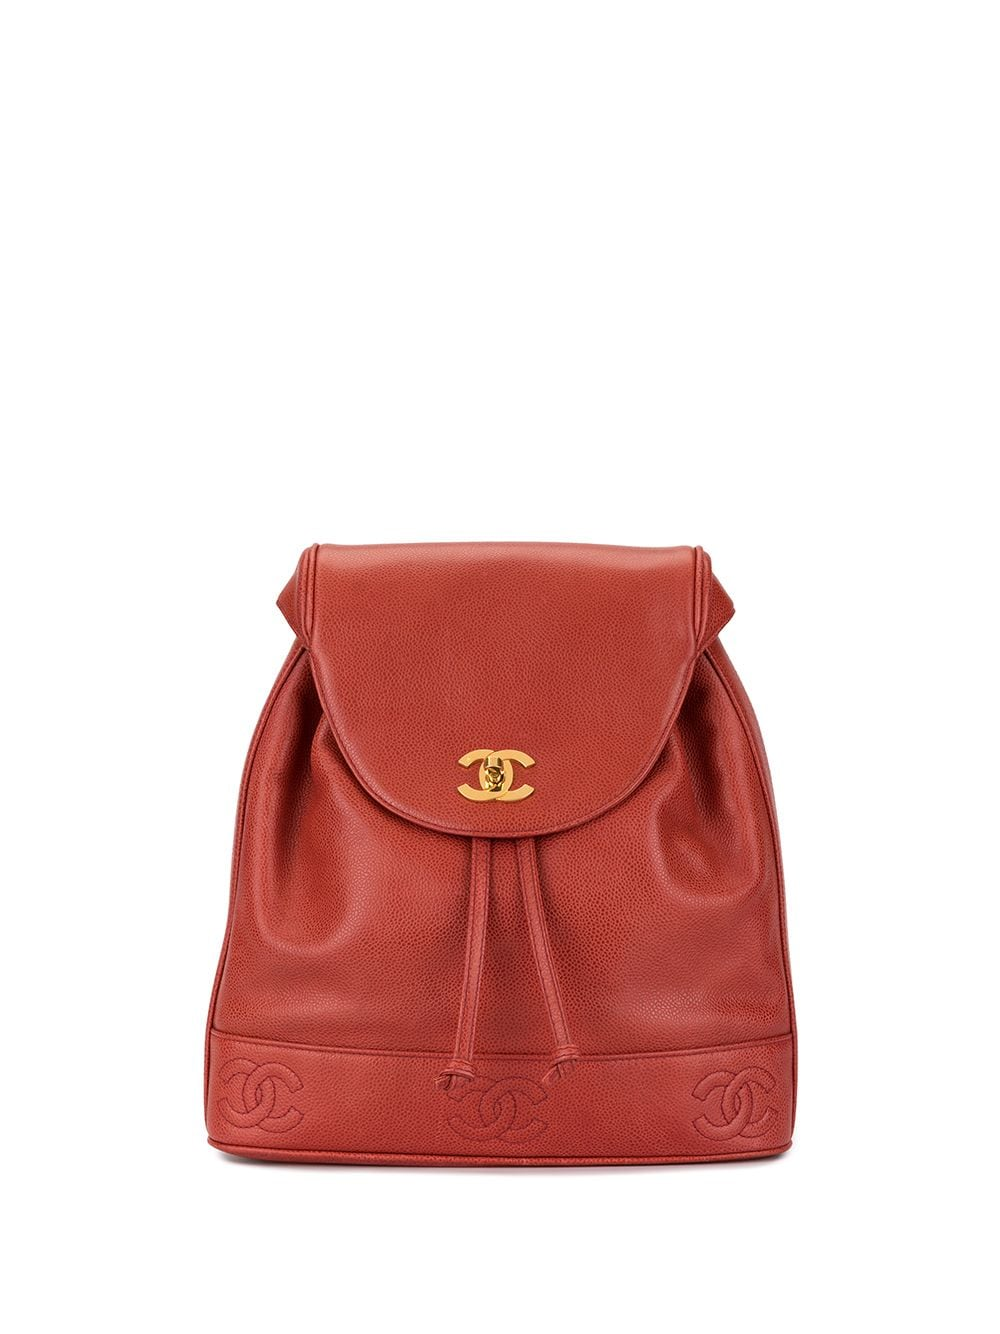 Chanel Pre-Owned Rucksack mit CC-Logo - Rot